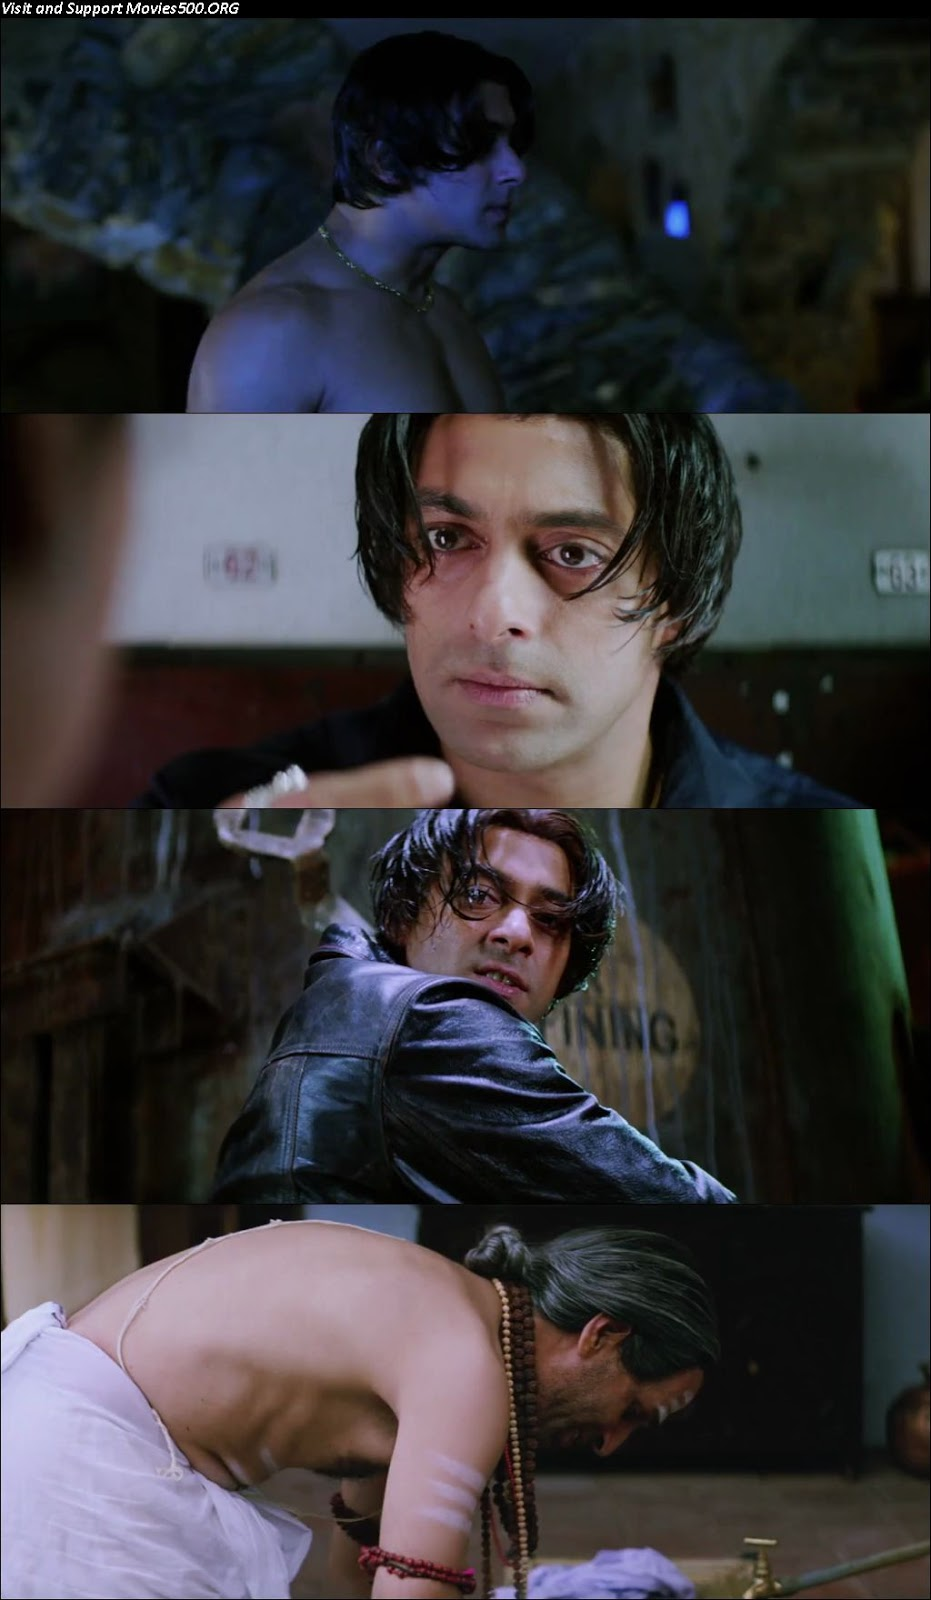 Tere Naam 2003 Full Movie 300MB DVD Download HD 480P at movies500.siteTere Naam 2003 Full Movie 300MB DVD Download HD 480P at movies500.site